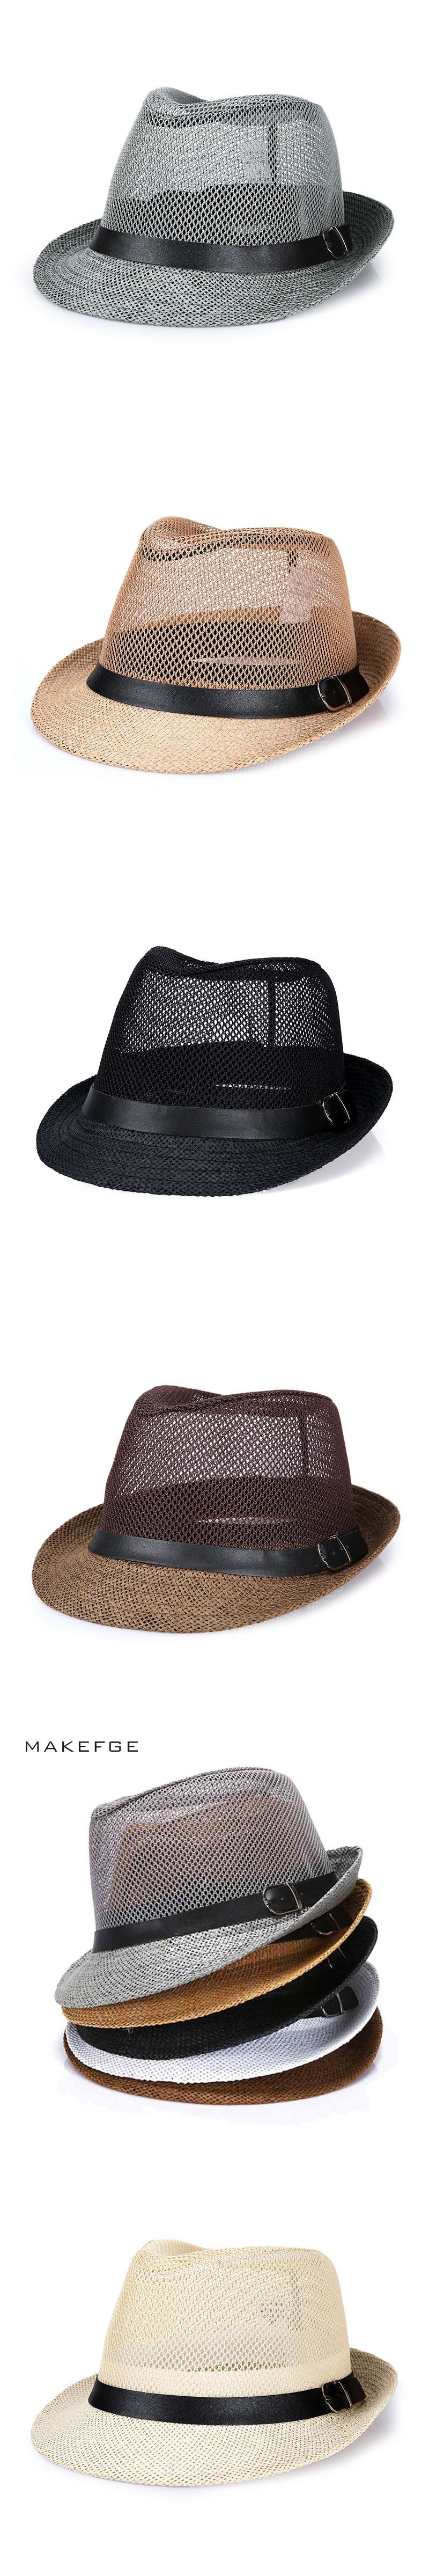 cuban style hats Fashion Mens Summer Jazz Hat Breathable Casual ...